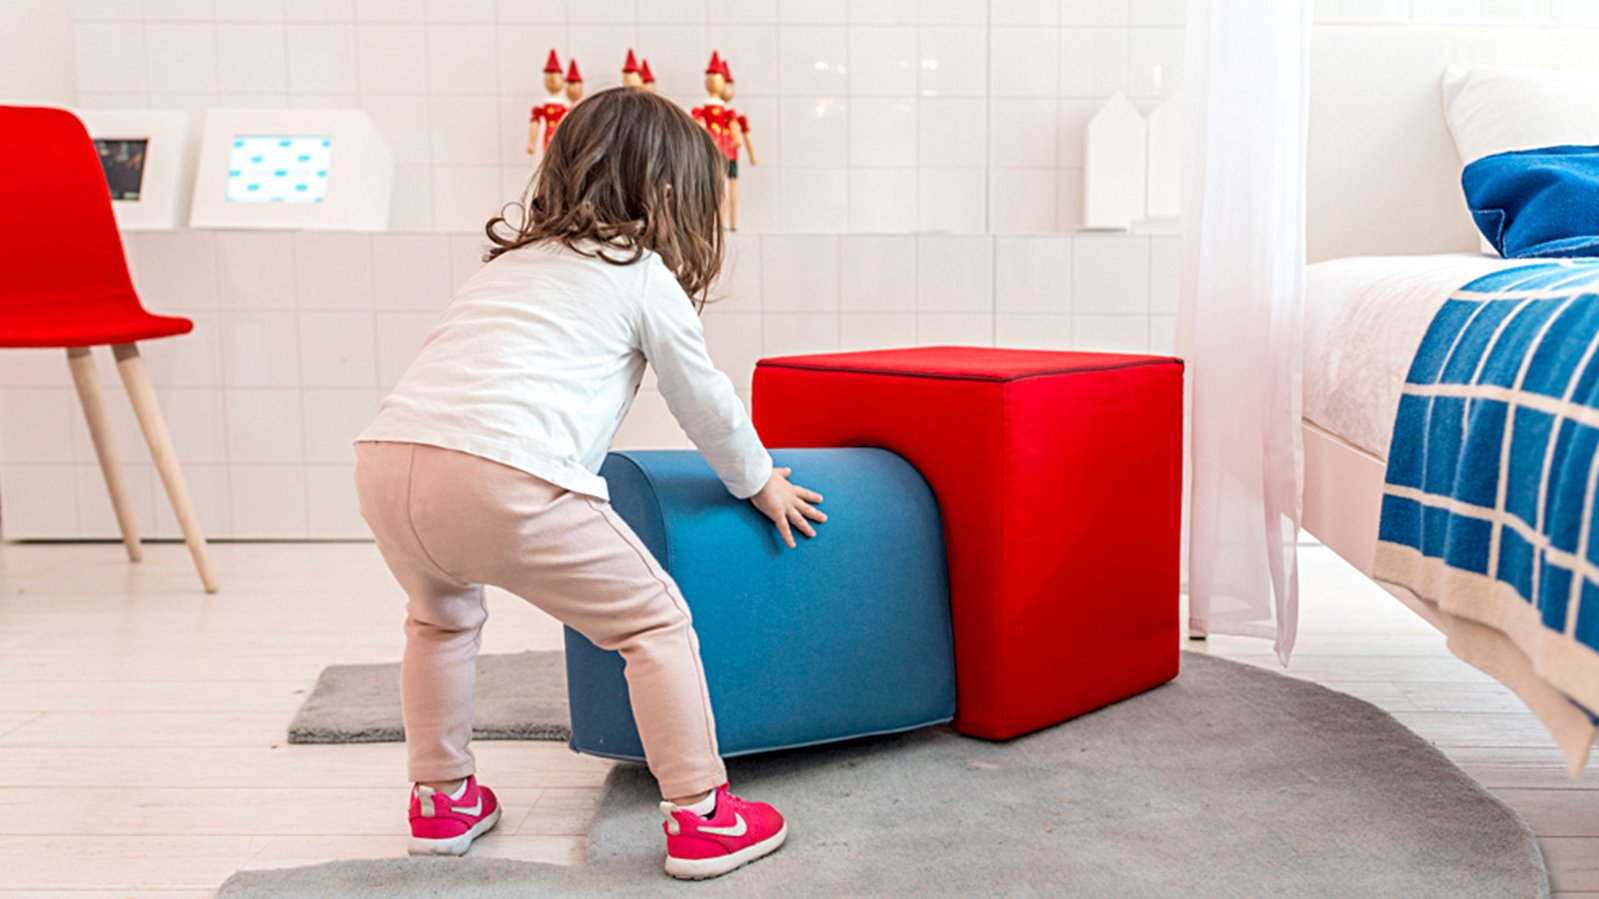 NIDI, DESIGN SPACE FOR CHILDREN